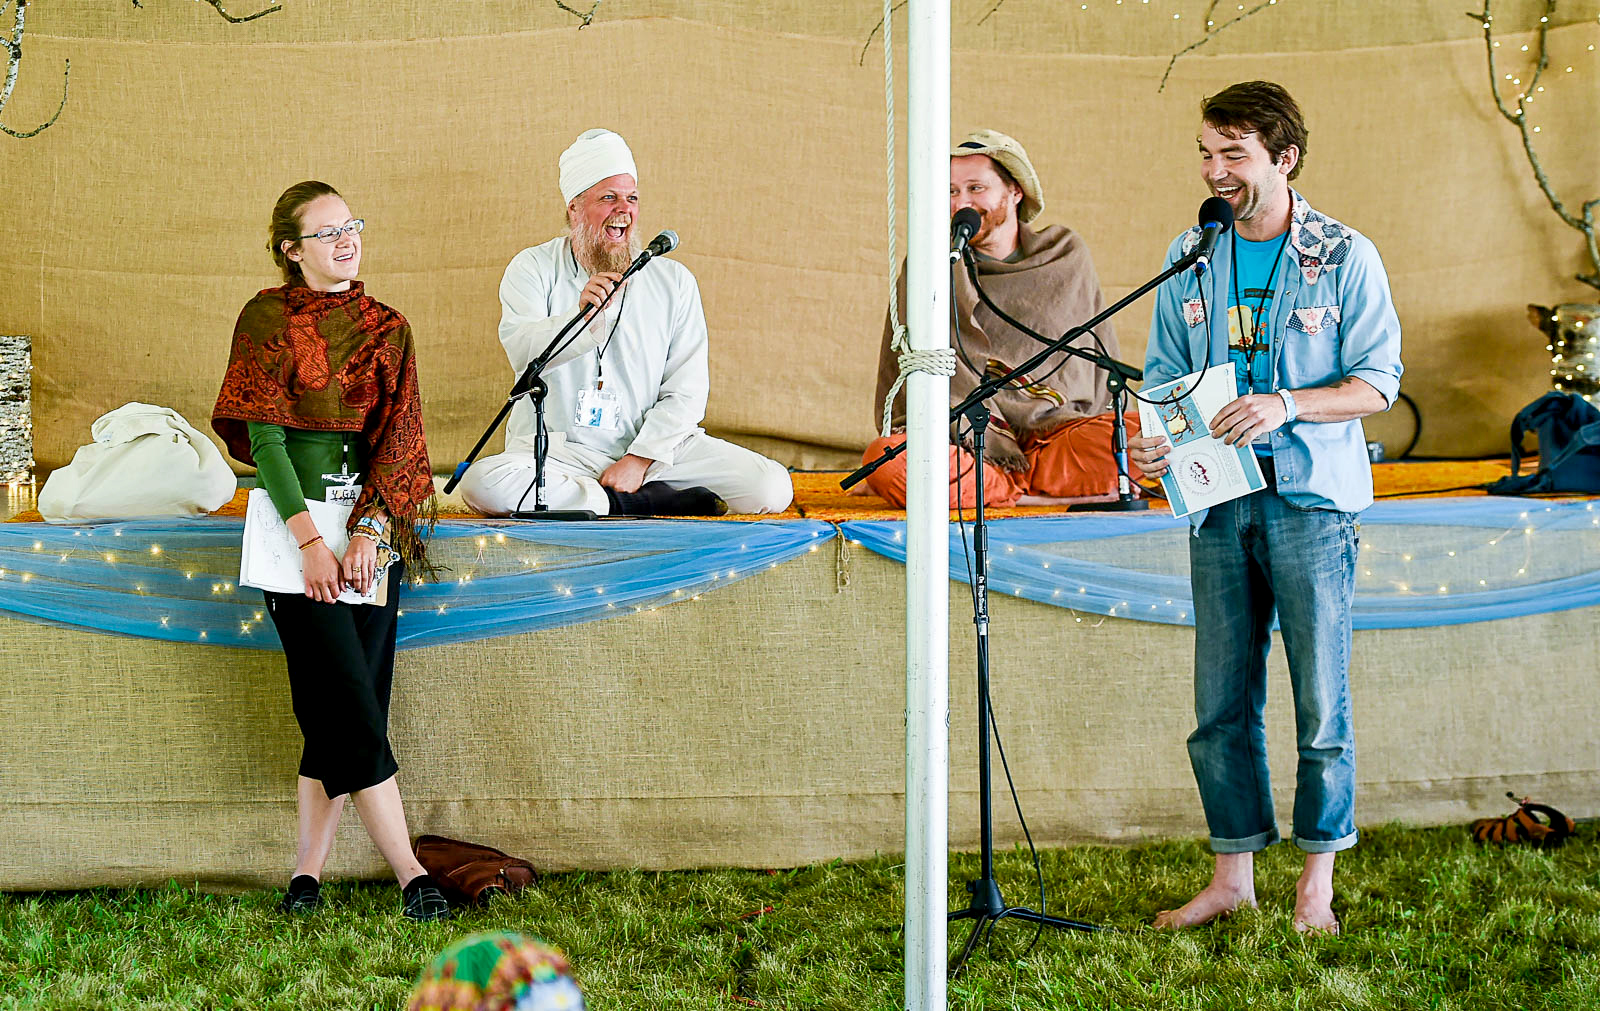 YogaFest Coordinator Brian Clark (barefoot at the microphone) shares a laugh with Assistant Coordinator Justine Markey (standing), Mohinder Singh (in white) and Trevor Chaitanya (partially obscured) during a morning Seva Meeting at YogaFest 2017.